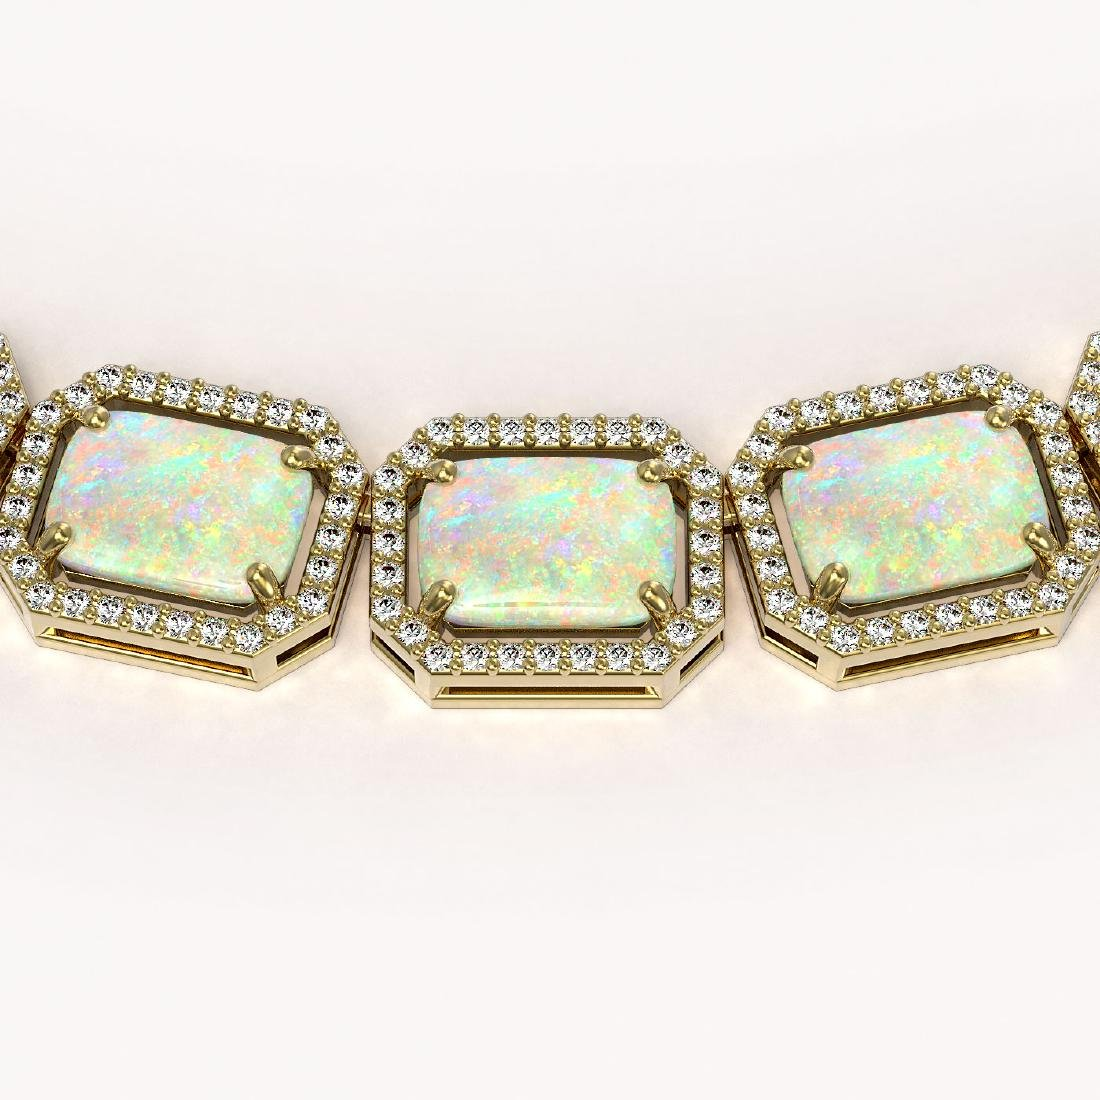 53.59 CTW Opal & Diamond Halo Necklace 10K Yellow Gold - 3